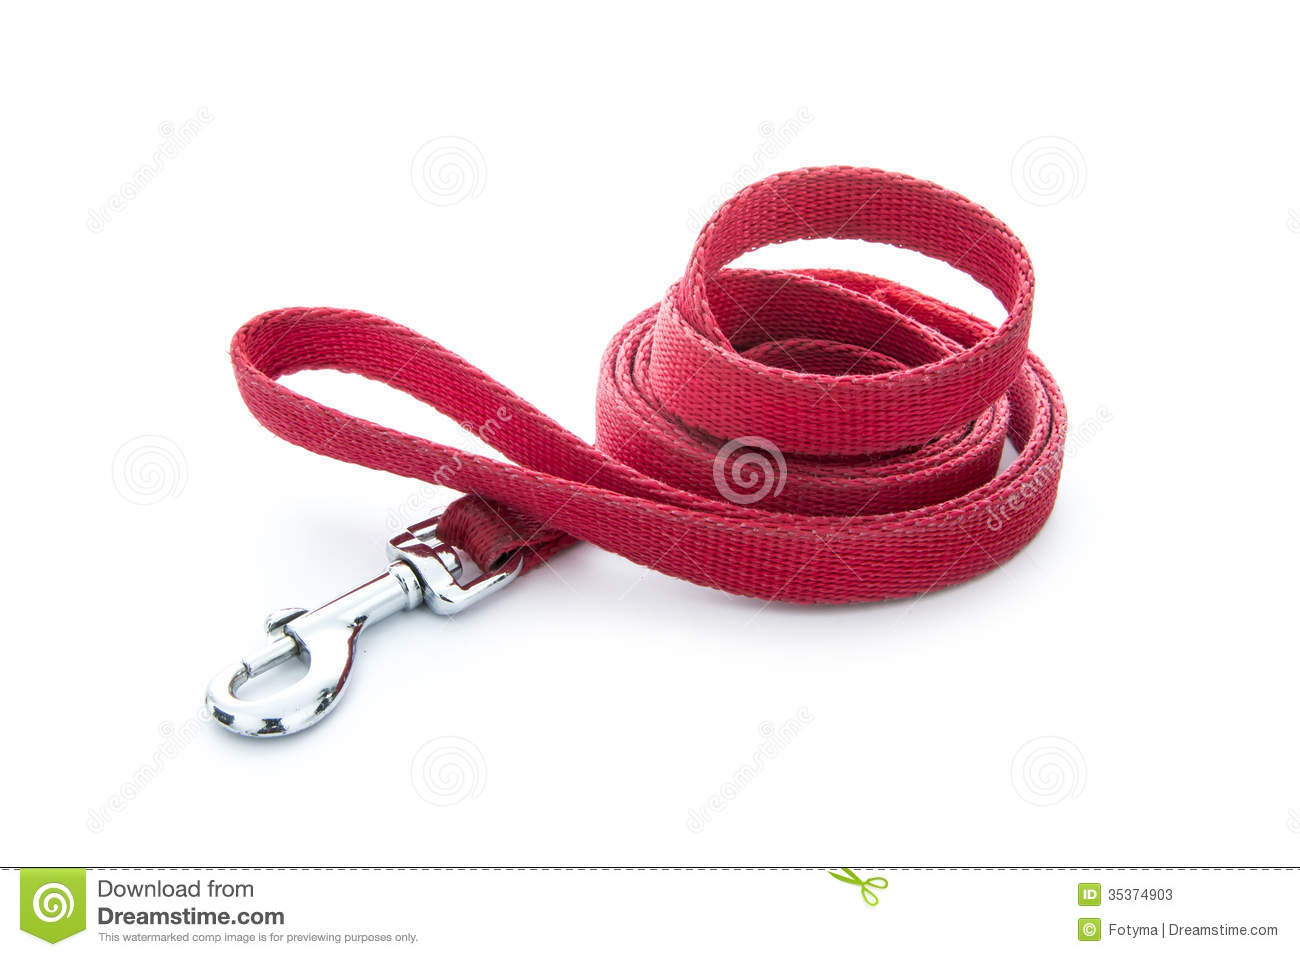 How To Make A Chain Link Dog Leash